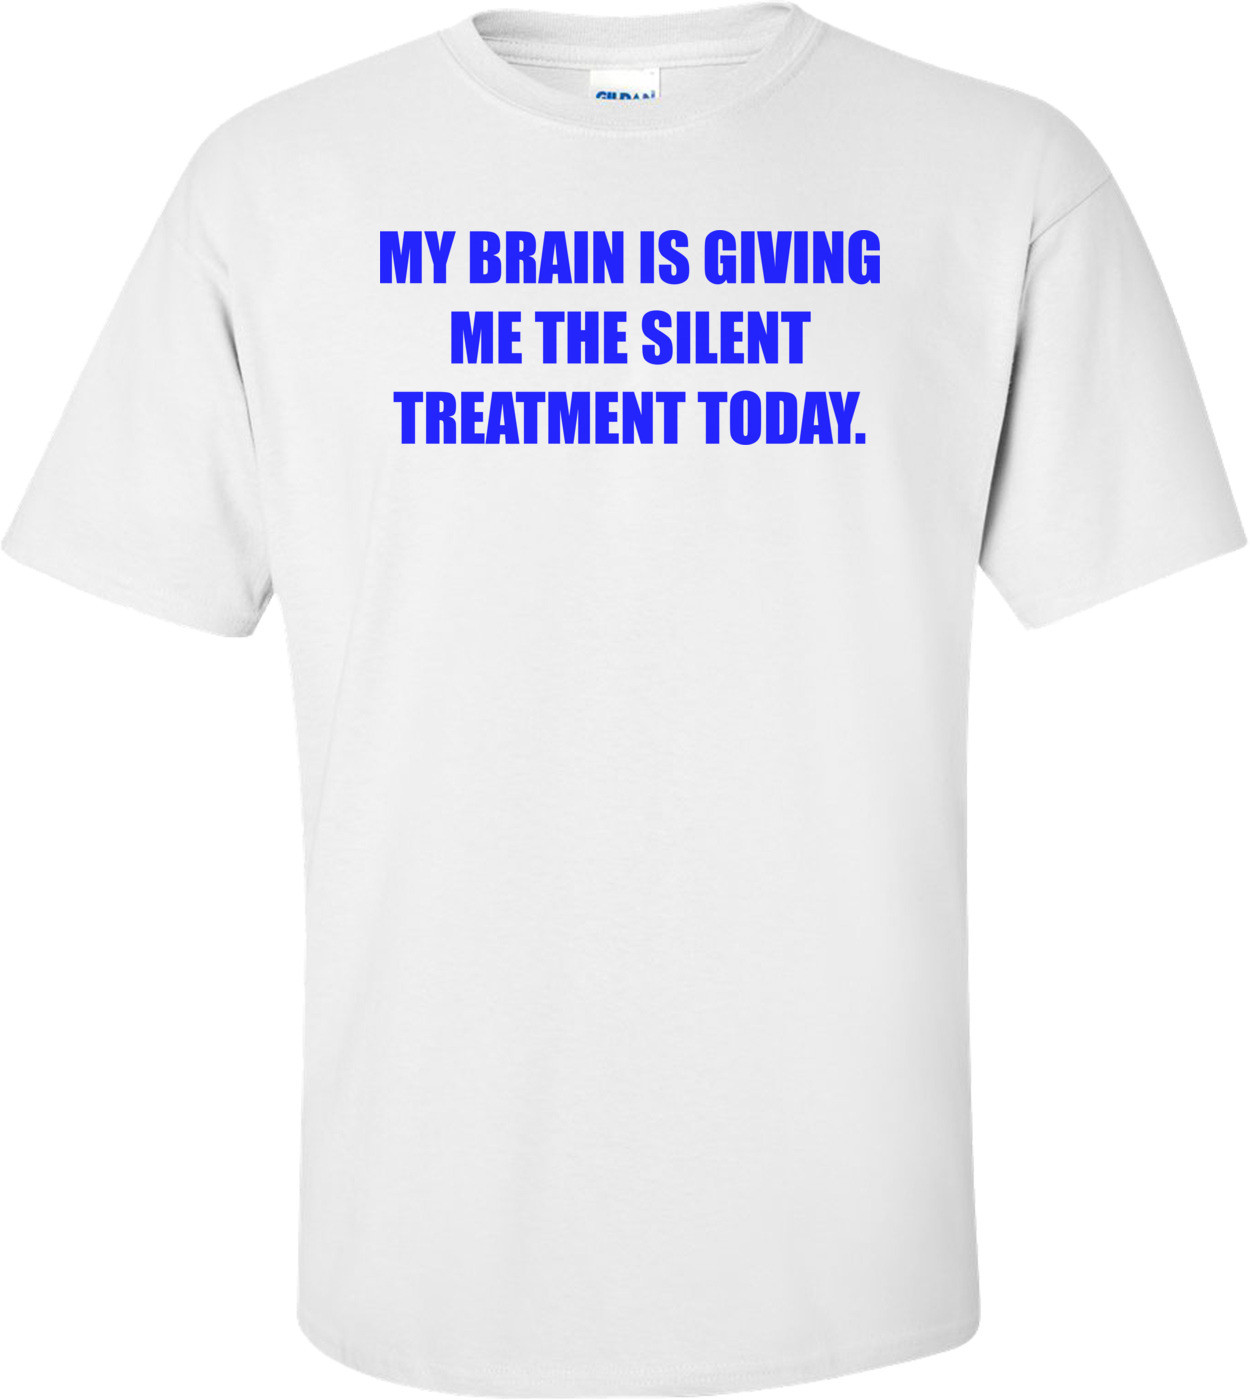 MY BRAIN IS GIVING ME THE SILENT TREATMENT TODAY. Shirt